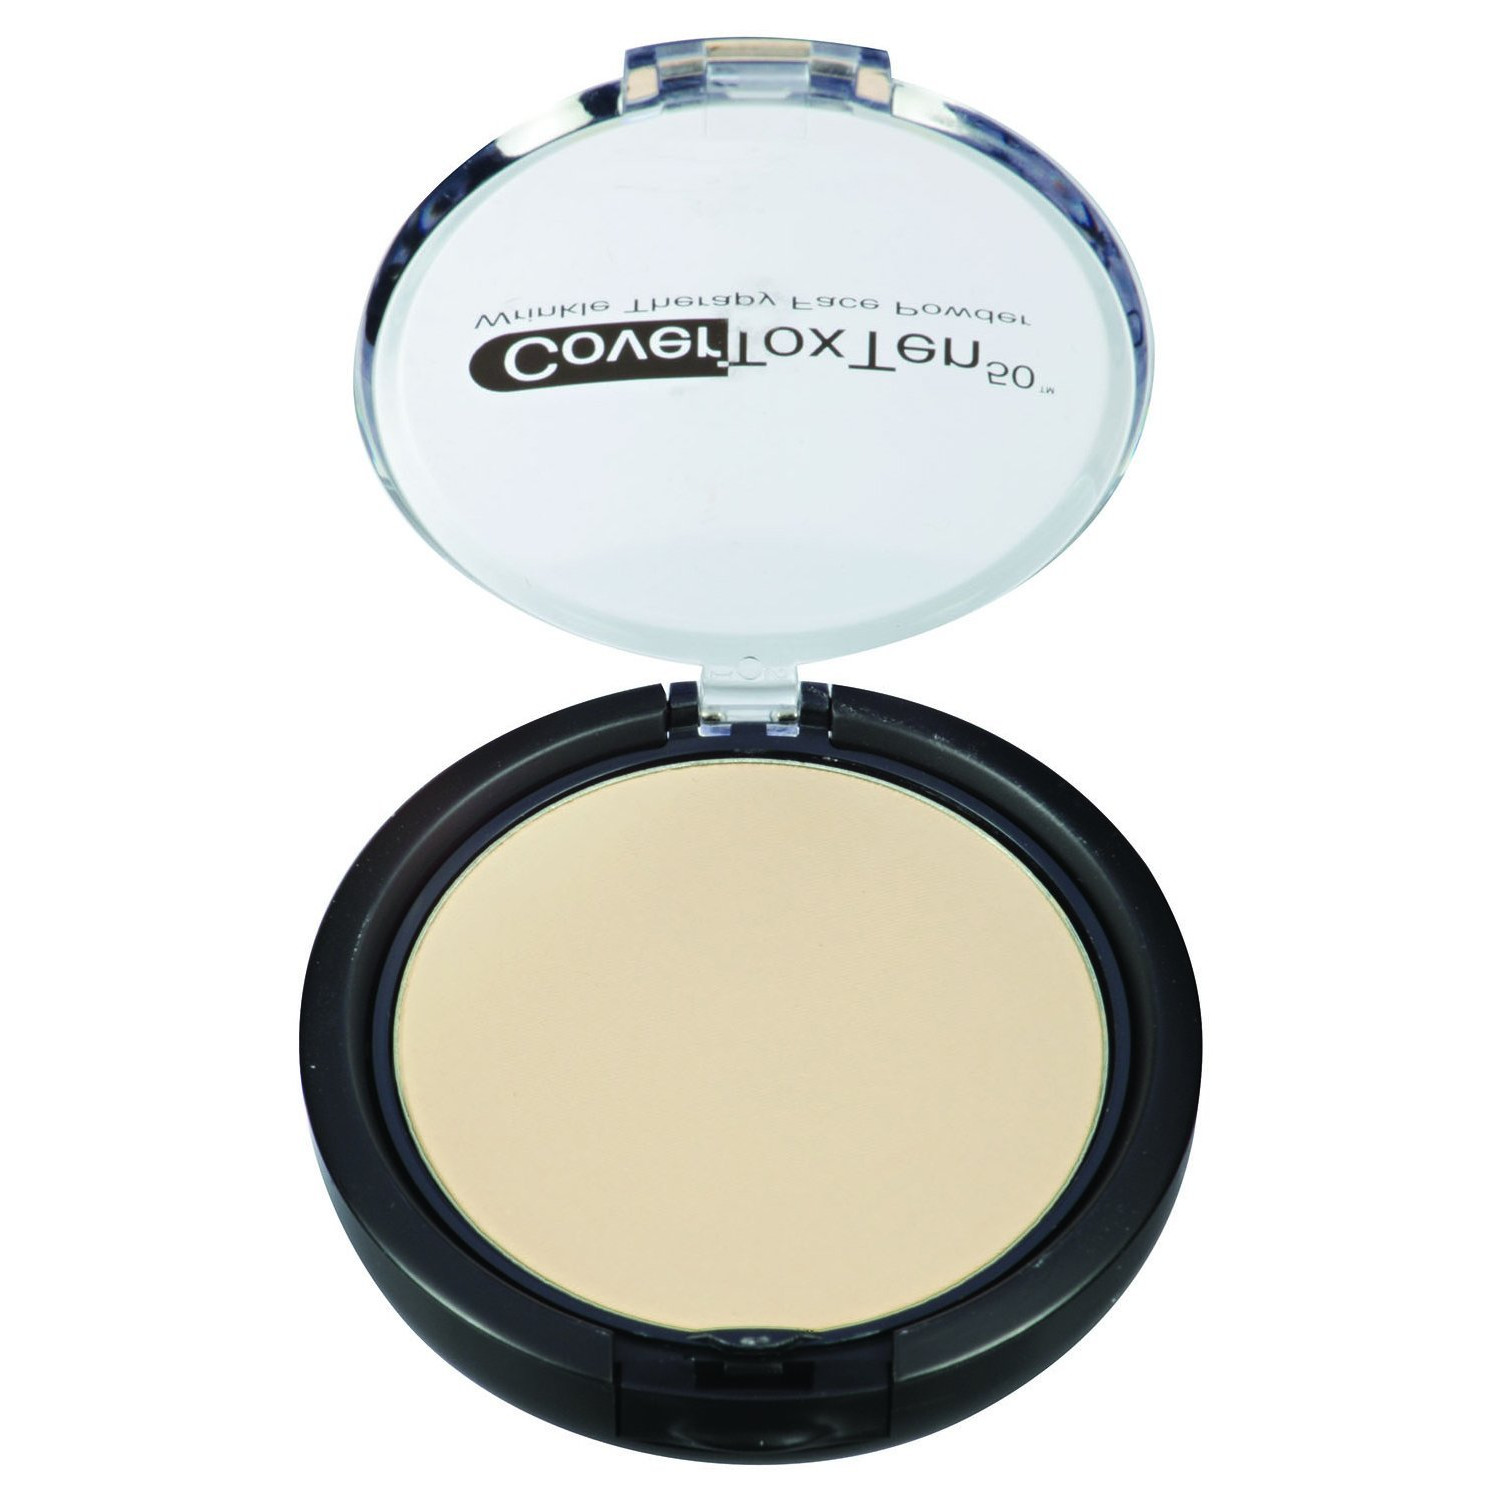 Physicians Formula Covertoxten 2 Wrinkle Therapy Face Powder - Translucent Light